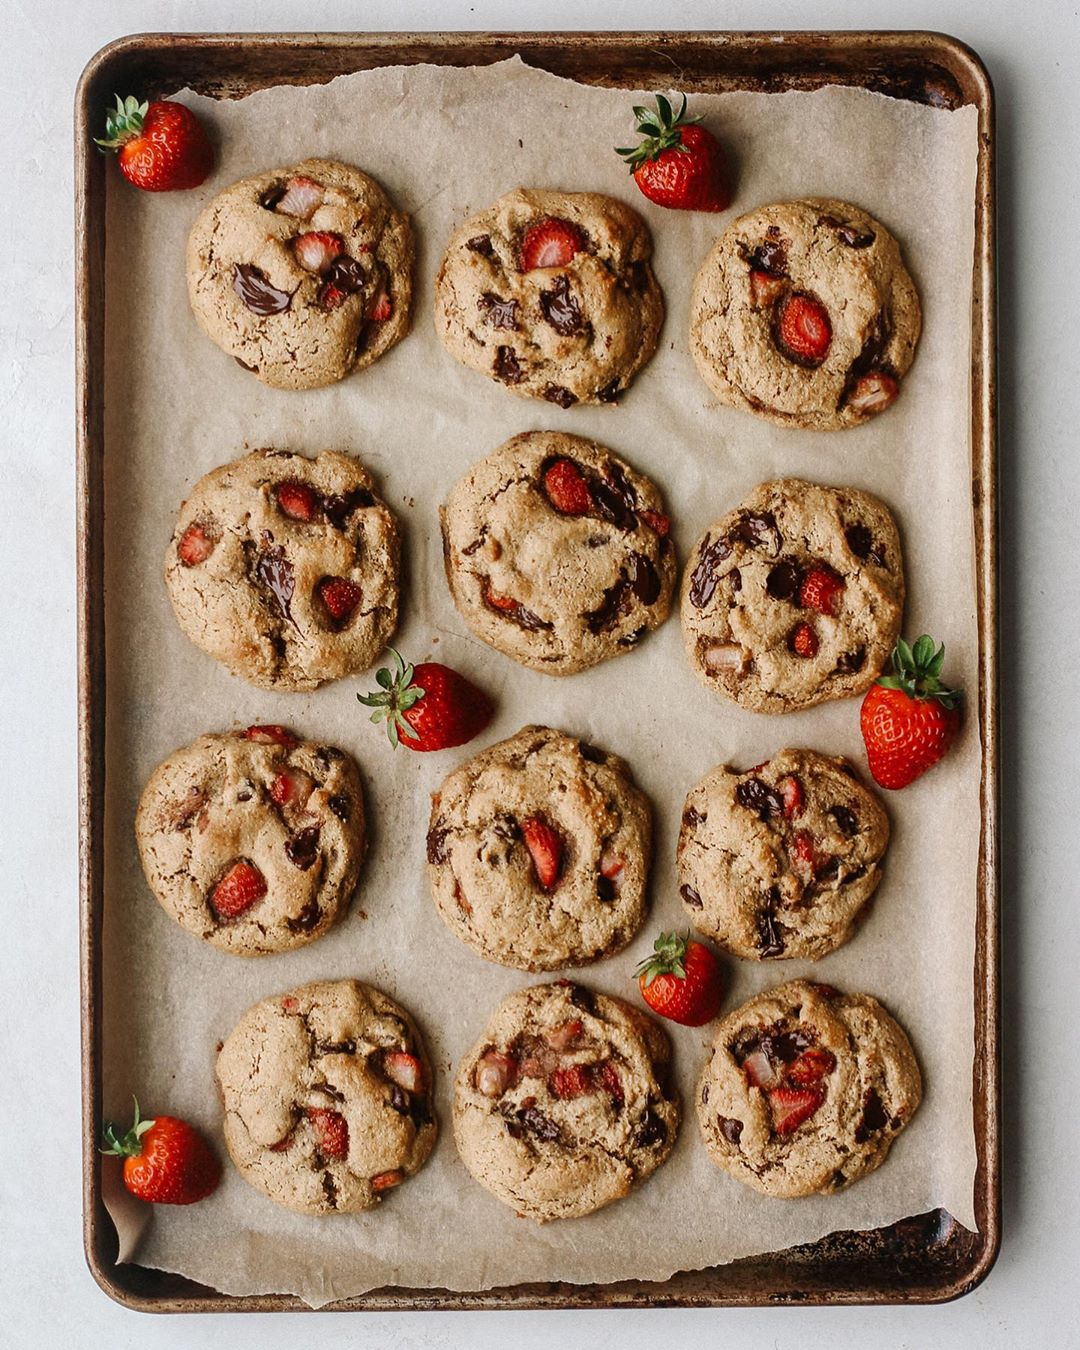 Strawberry Chocolate Chip Cookies In Par - Healthy Recipes